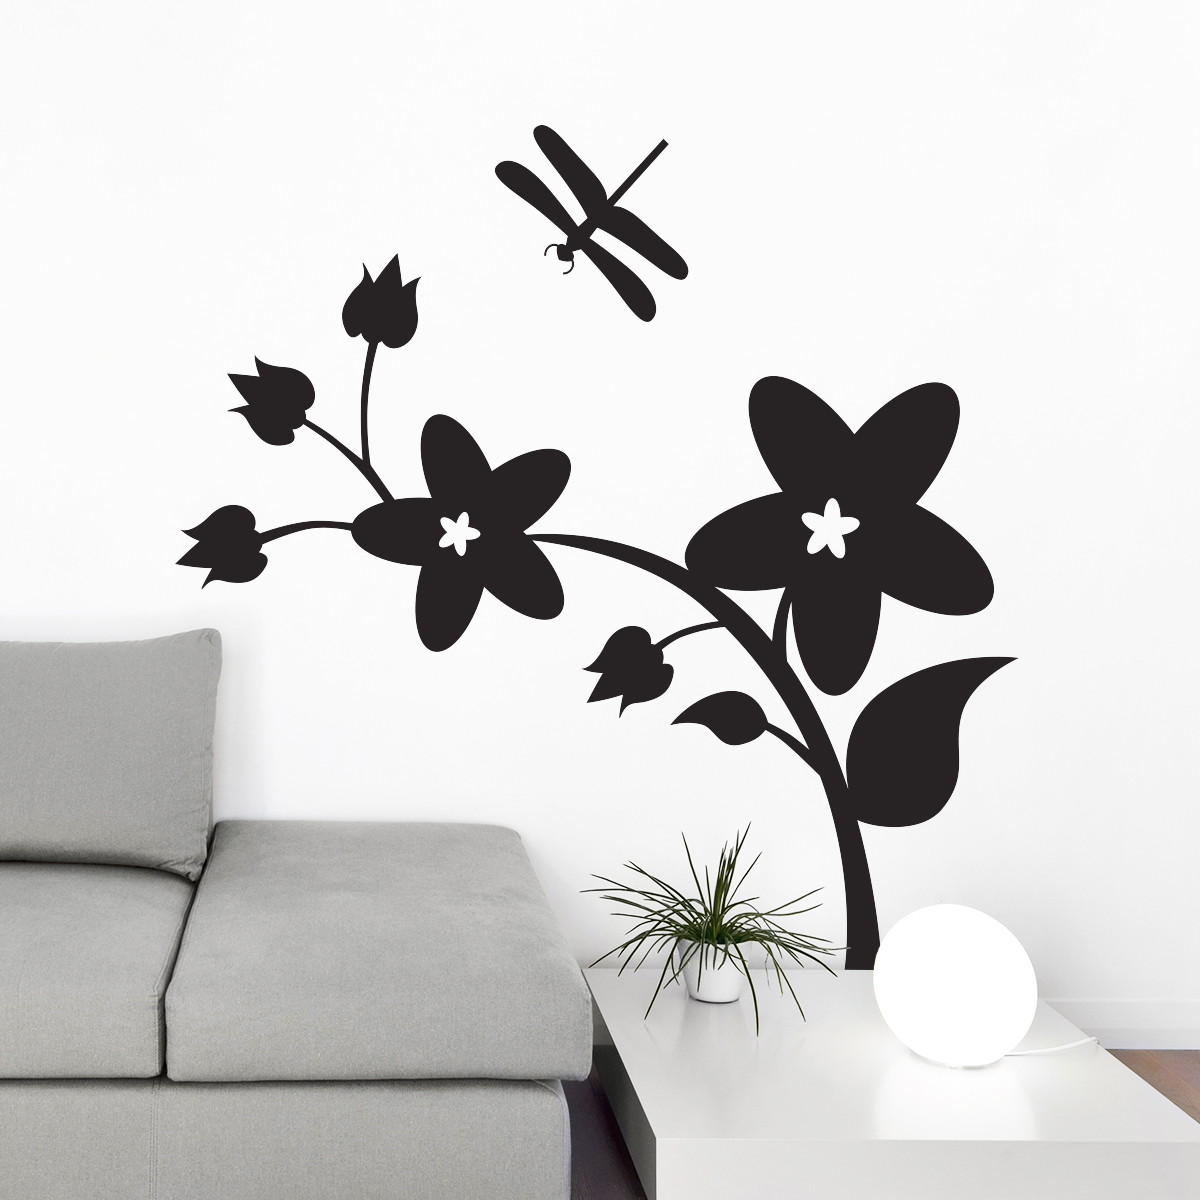 stickers muraux avec une branche d 39 arbre. Black Bedroom Furniture Sets. Home Design Ideas